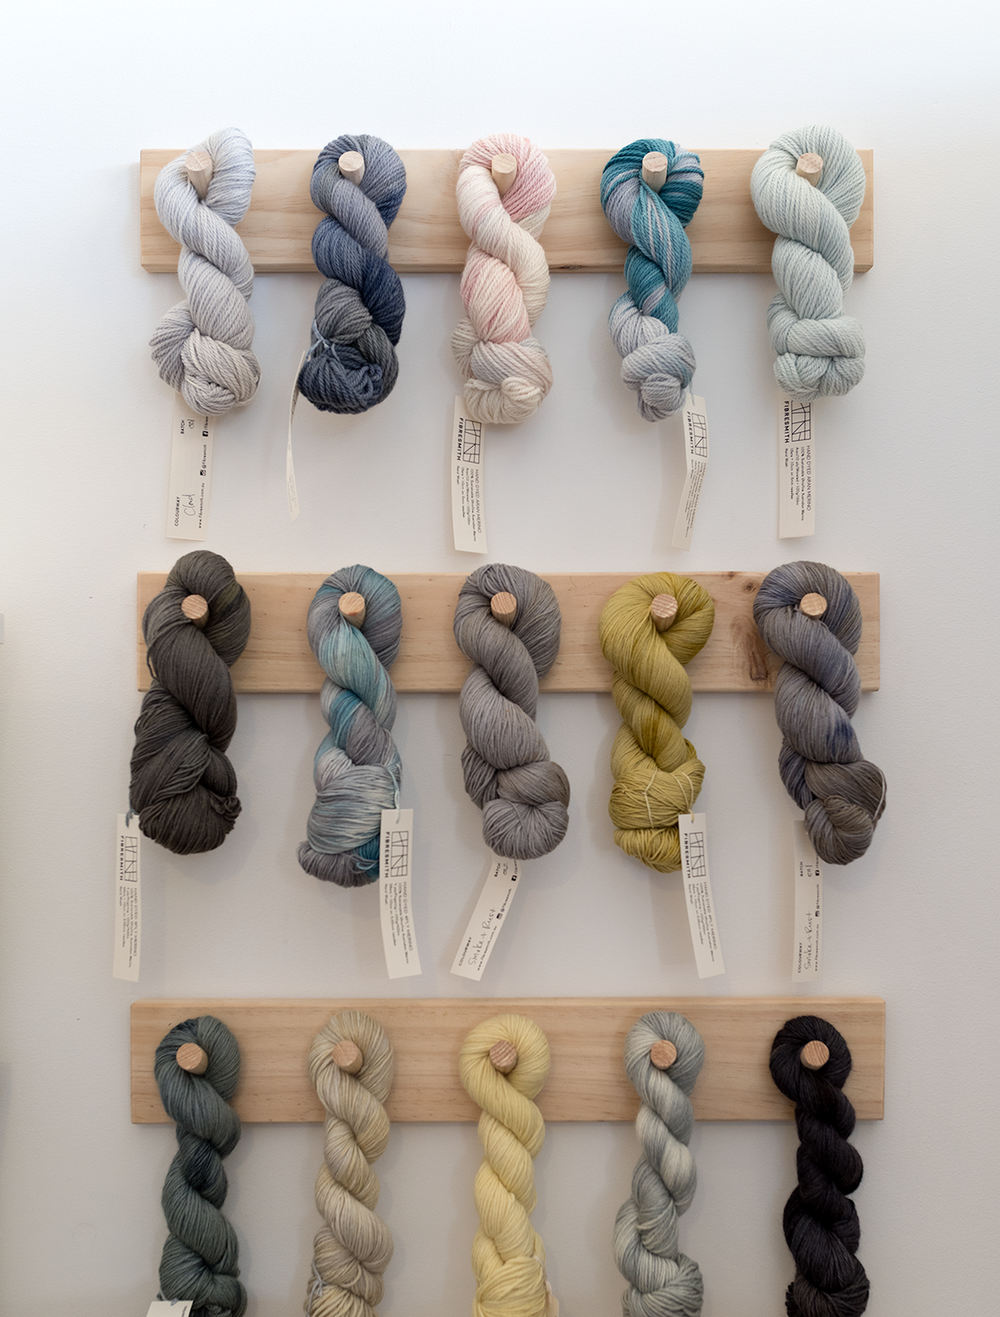 Skeins of Leslie's handdyed Fibresmith yarn. Photo by Susan Fitzgerald.